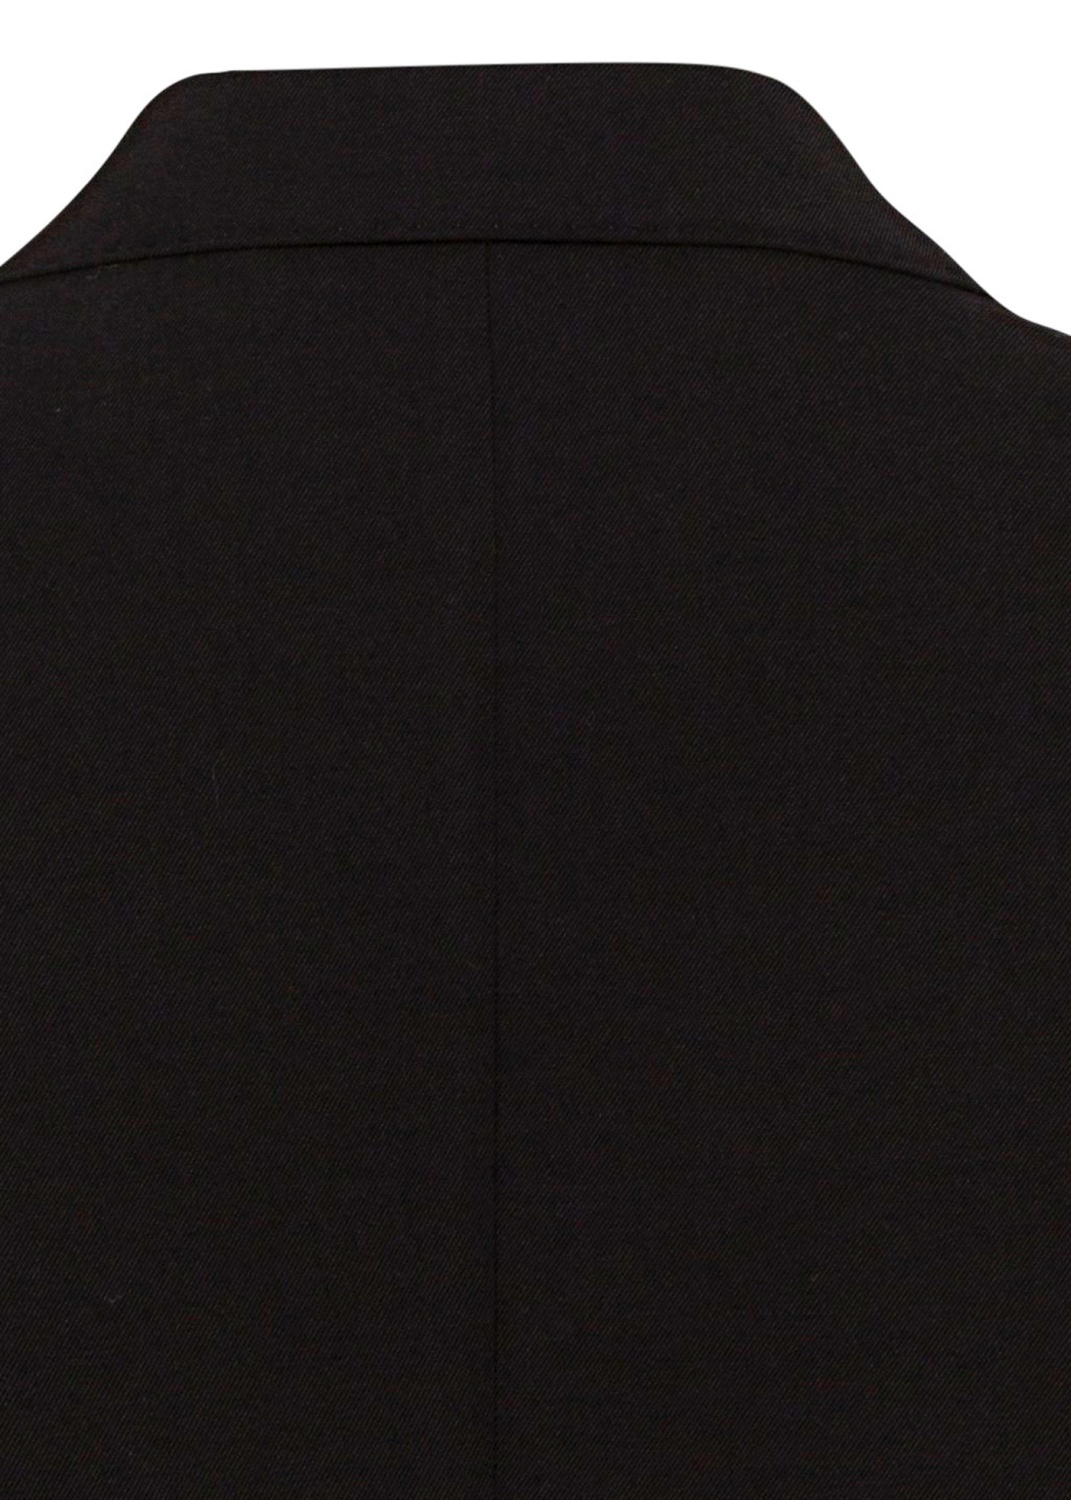 TWO BUTTONS JACKET image number 3